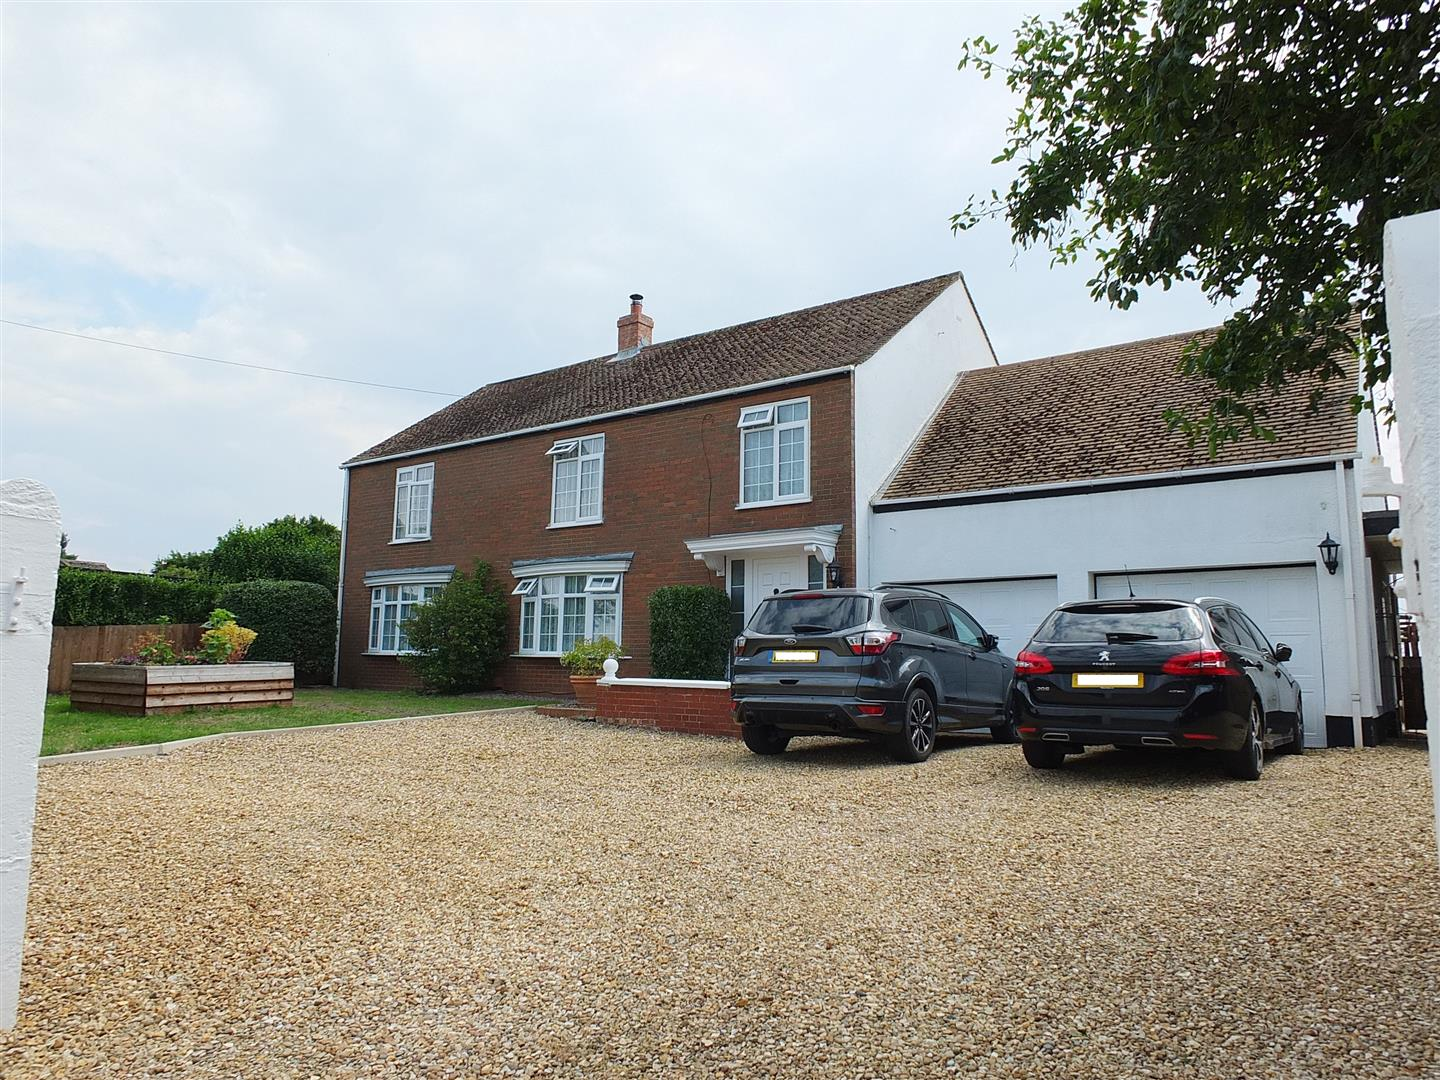 5 bed detached house for sale in Gedney Dyke Spalding, PE12 0AR 0